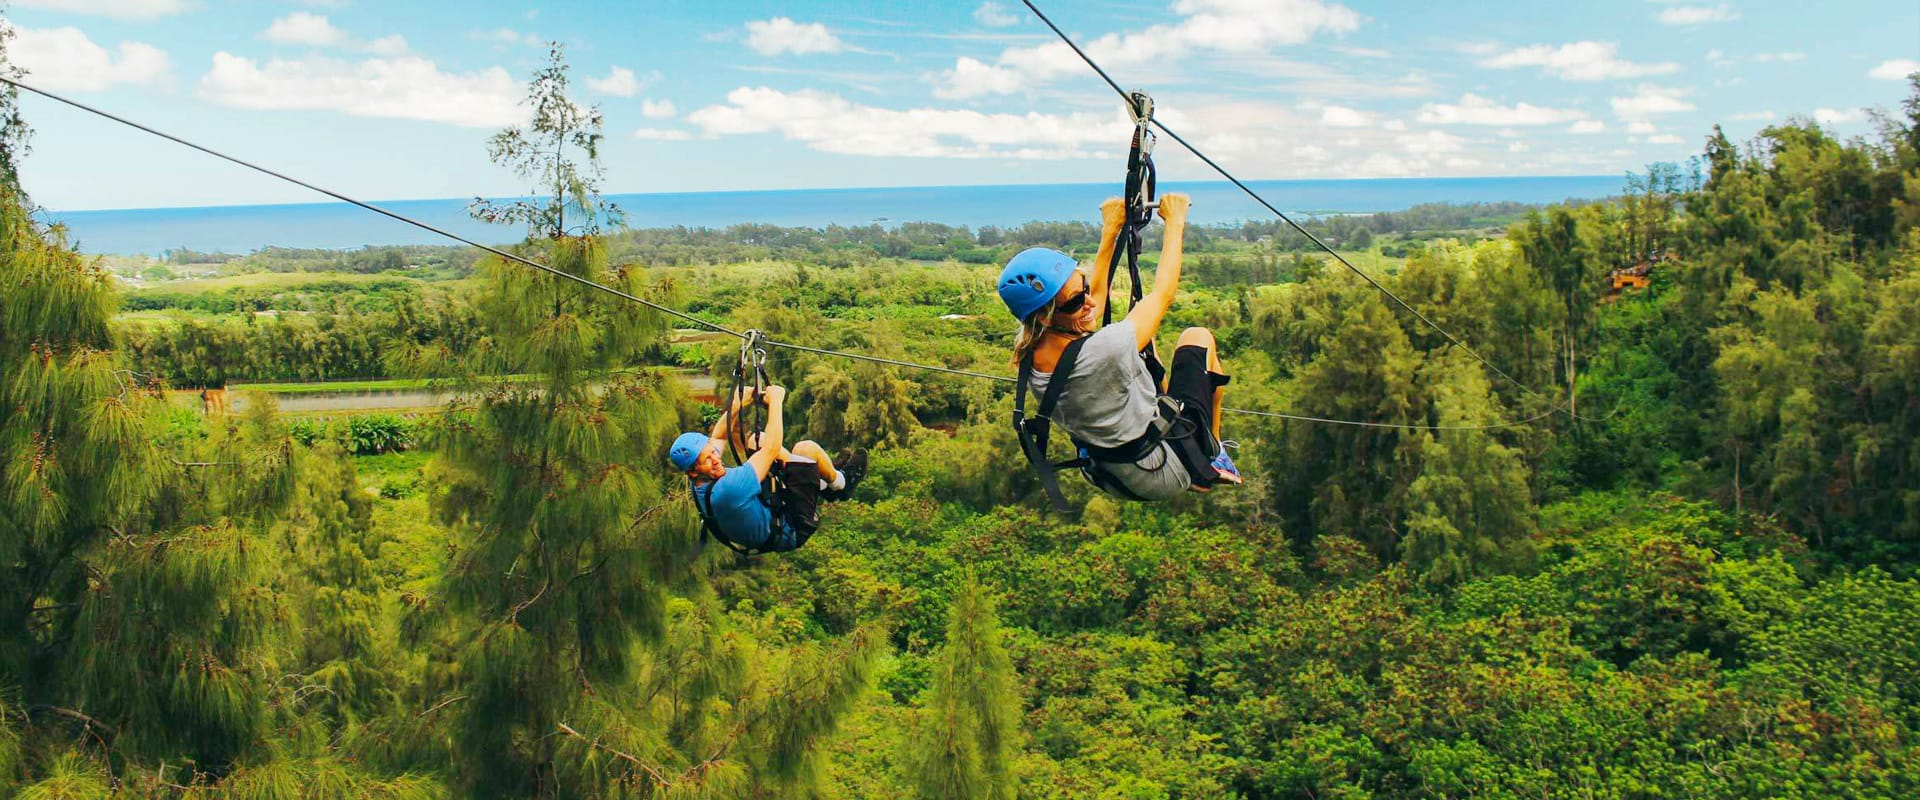 Fast paced exciting Zipline Tour